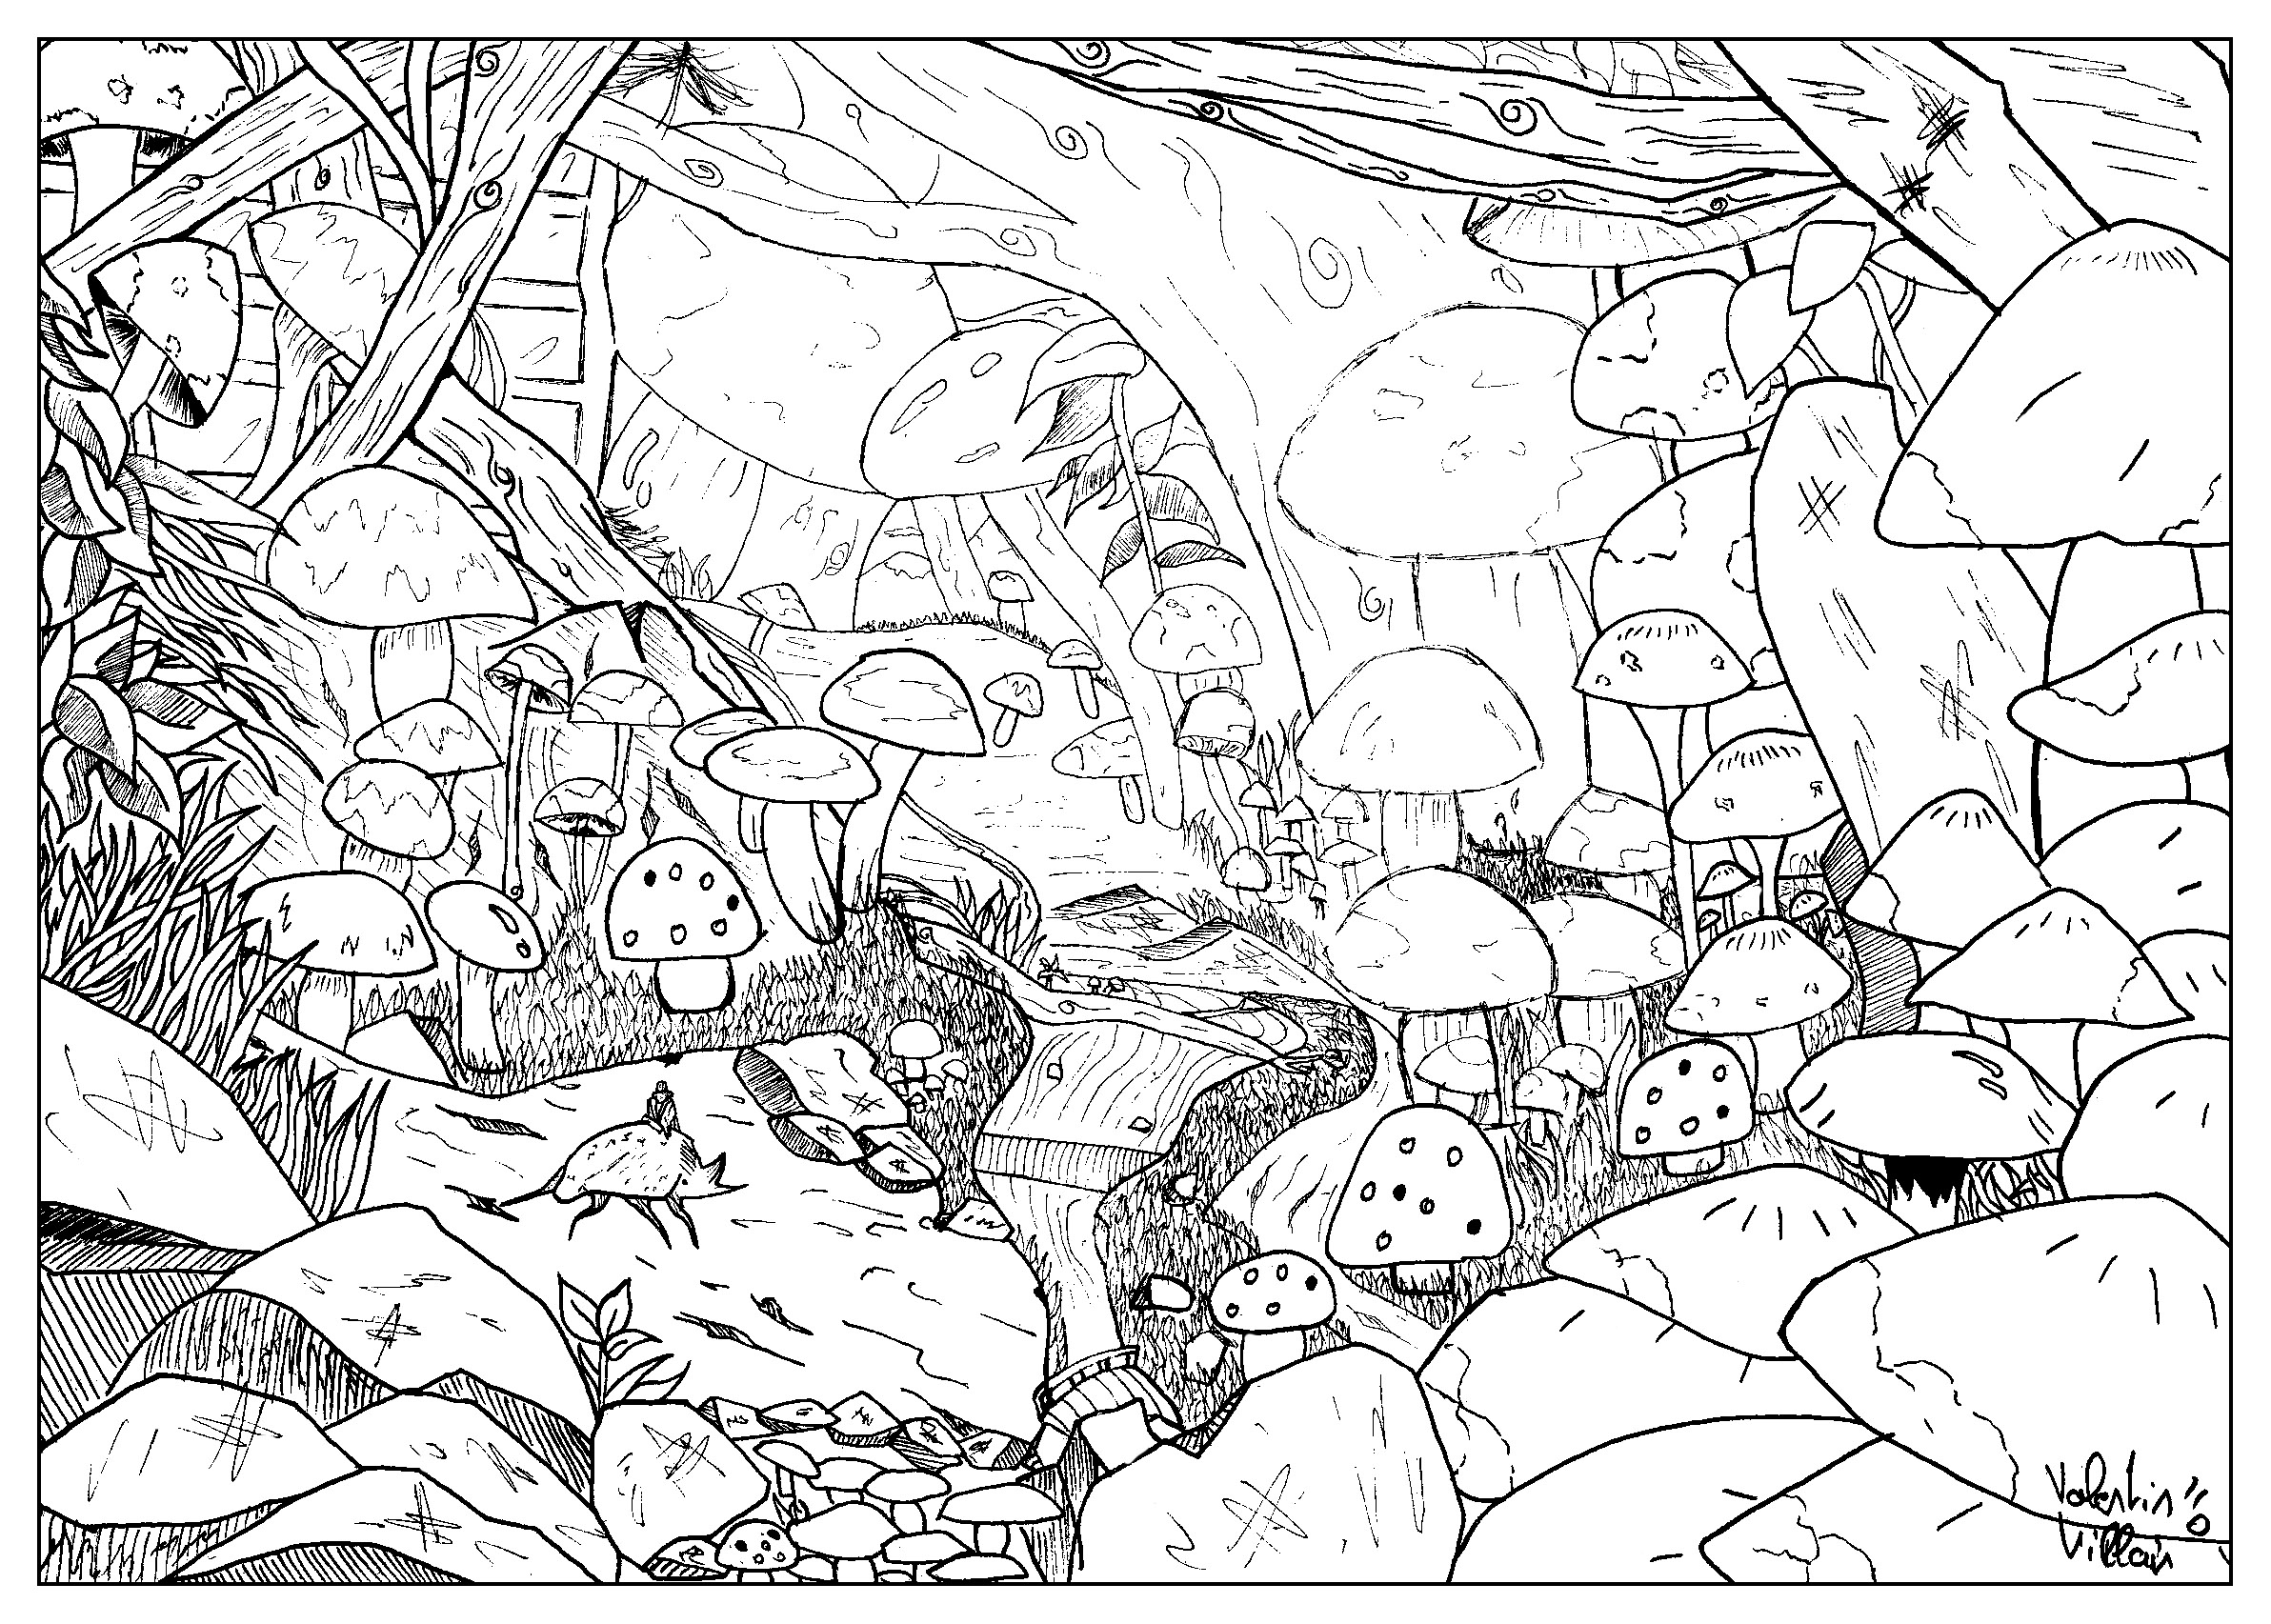 Coloring Page Landscape - Your creations you have colored this coloring page